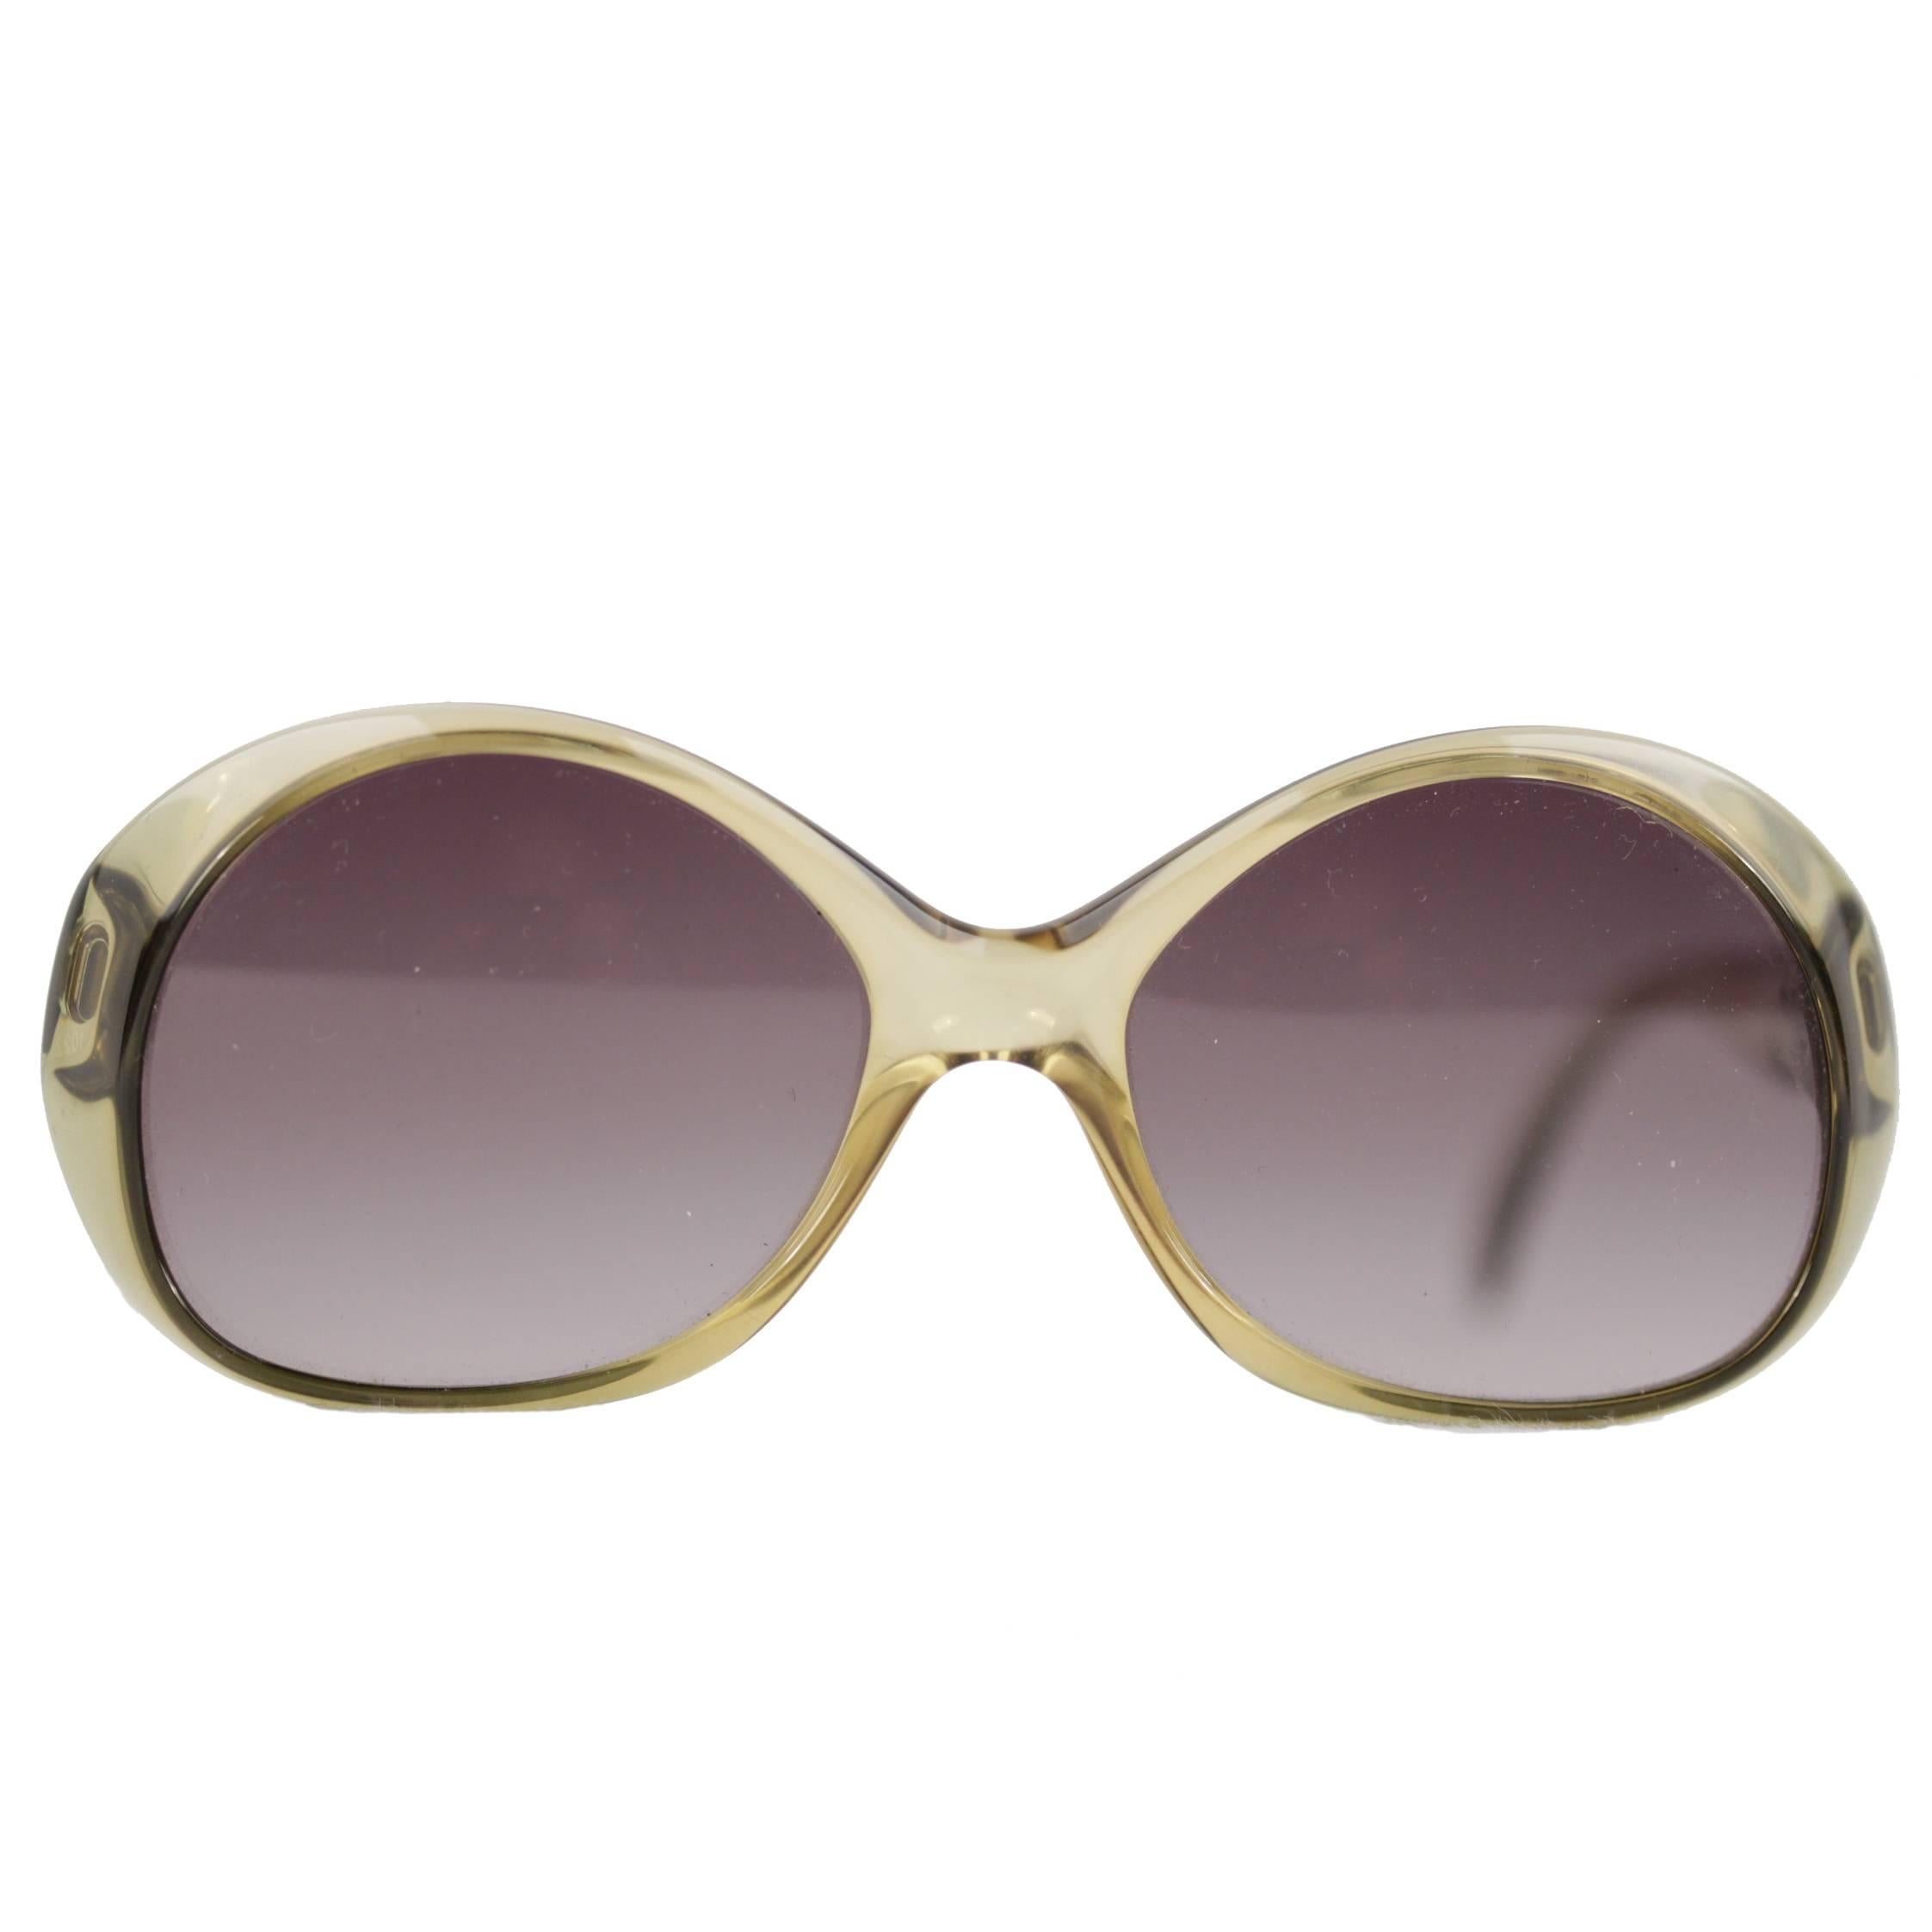 8eb8e6c2be 1980s Sunglasses - 639 For Sale at 1stdibs - Page 10